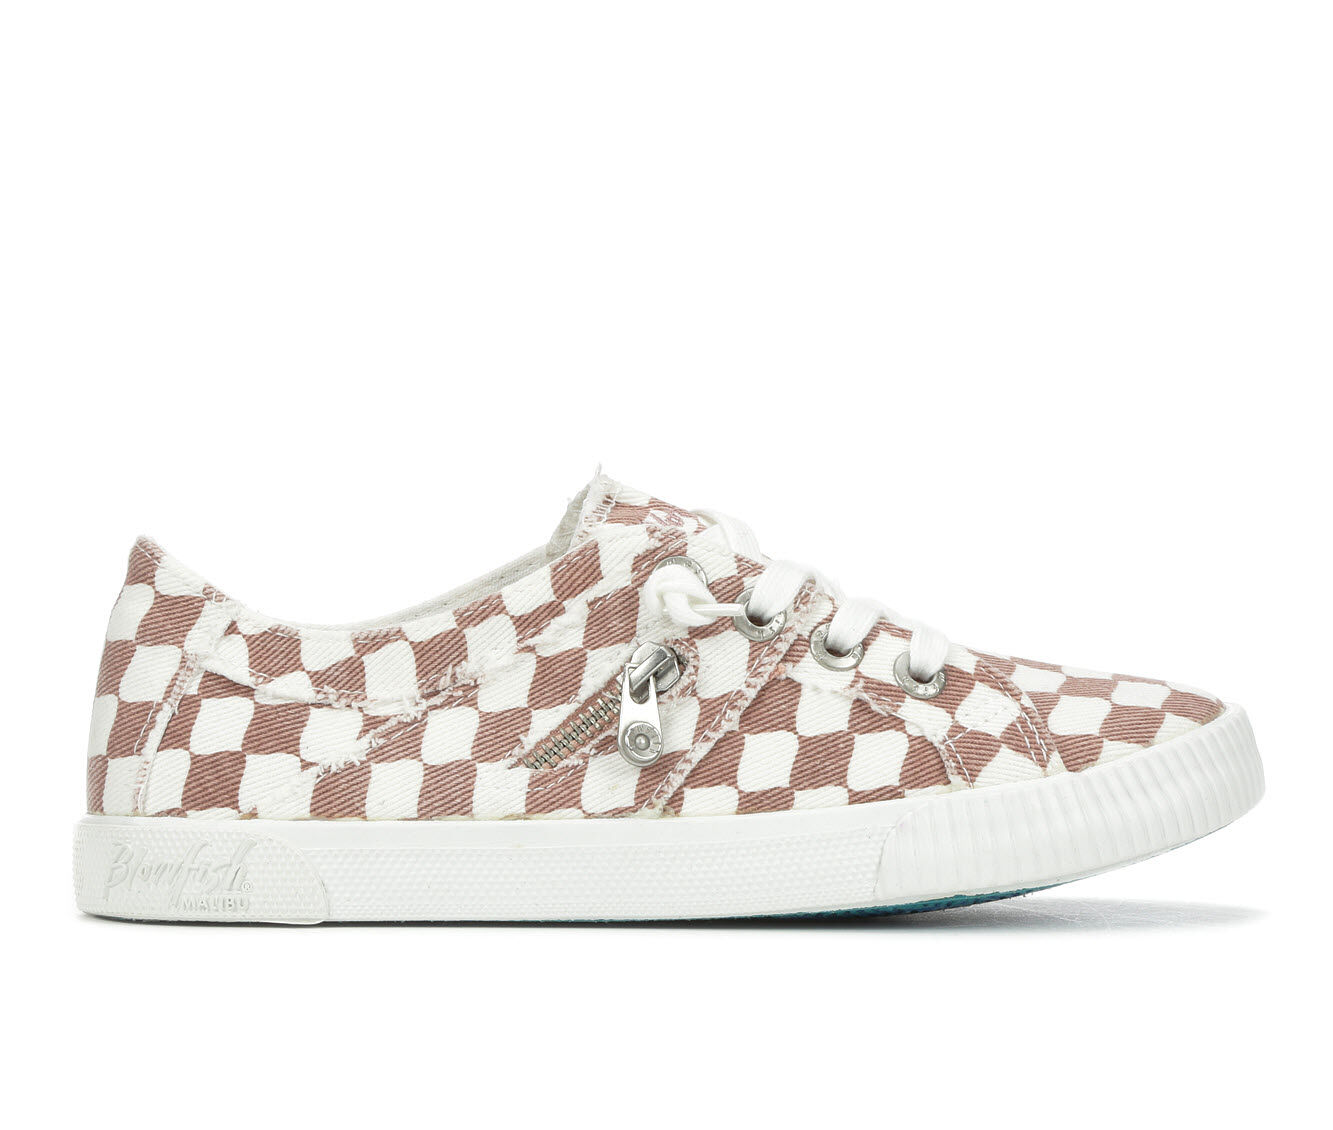 Women's Blowfish Malibu Fruit Sneakers DirtyPink Check